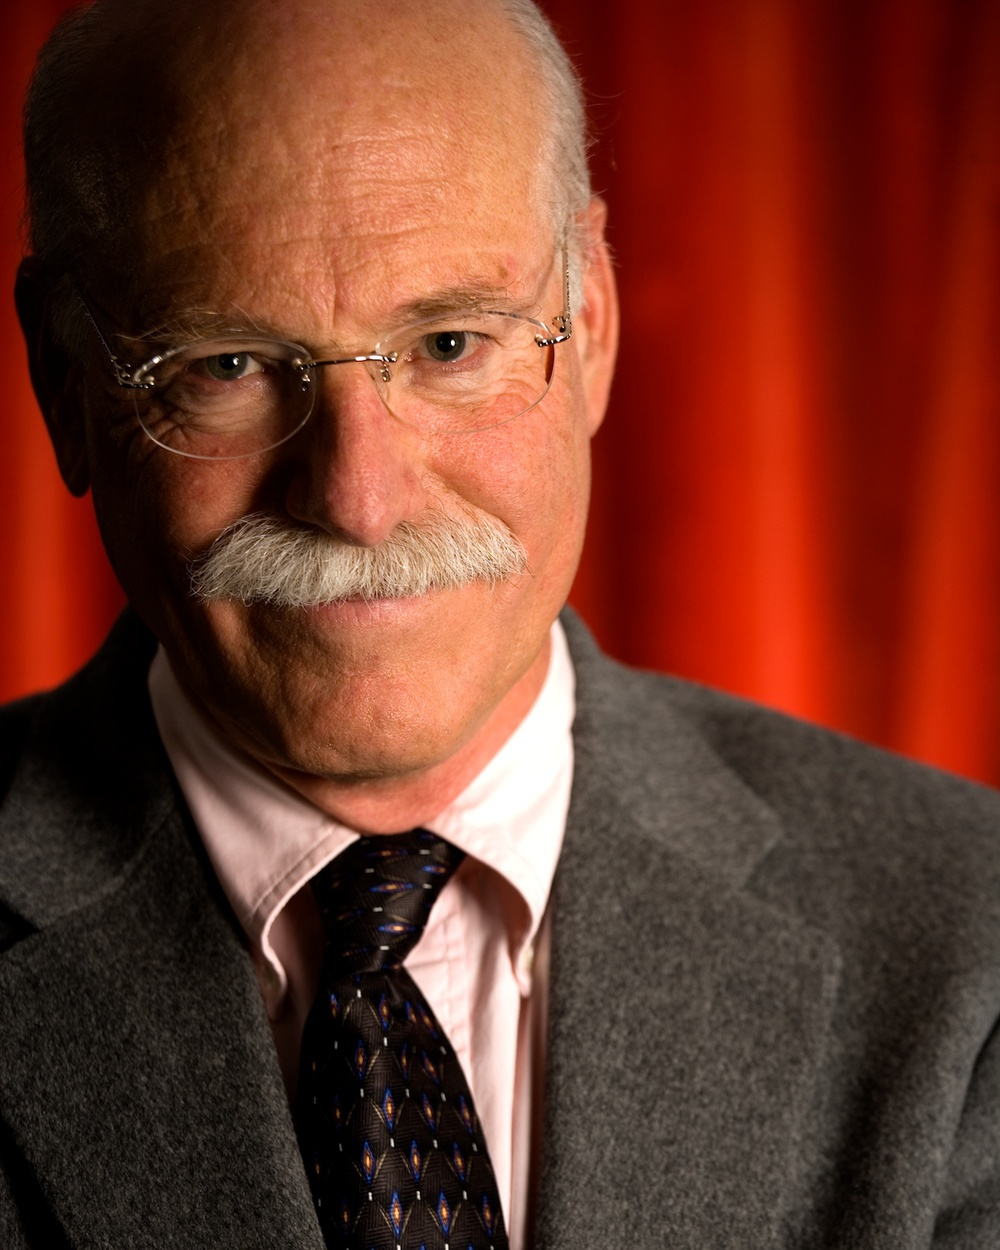 powder by tobias wolff essay